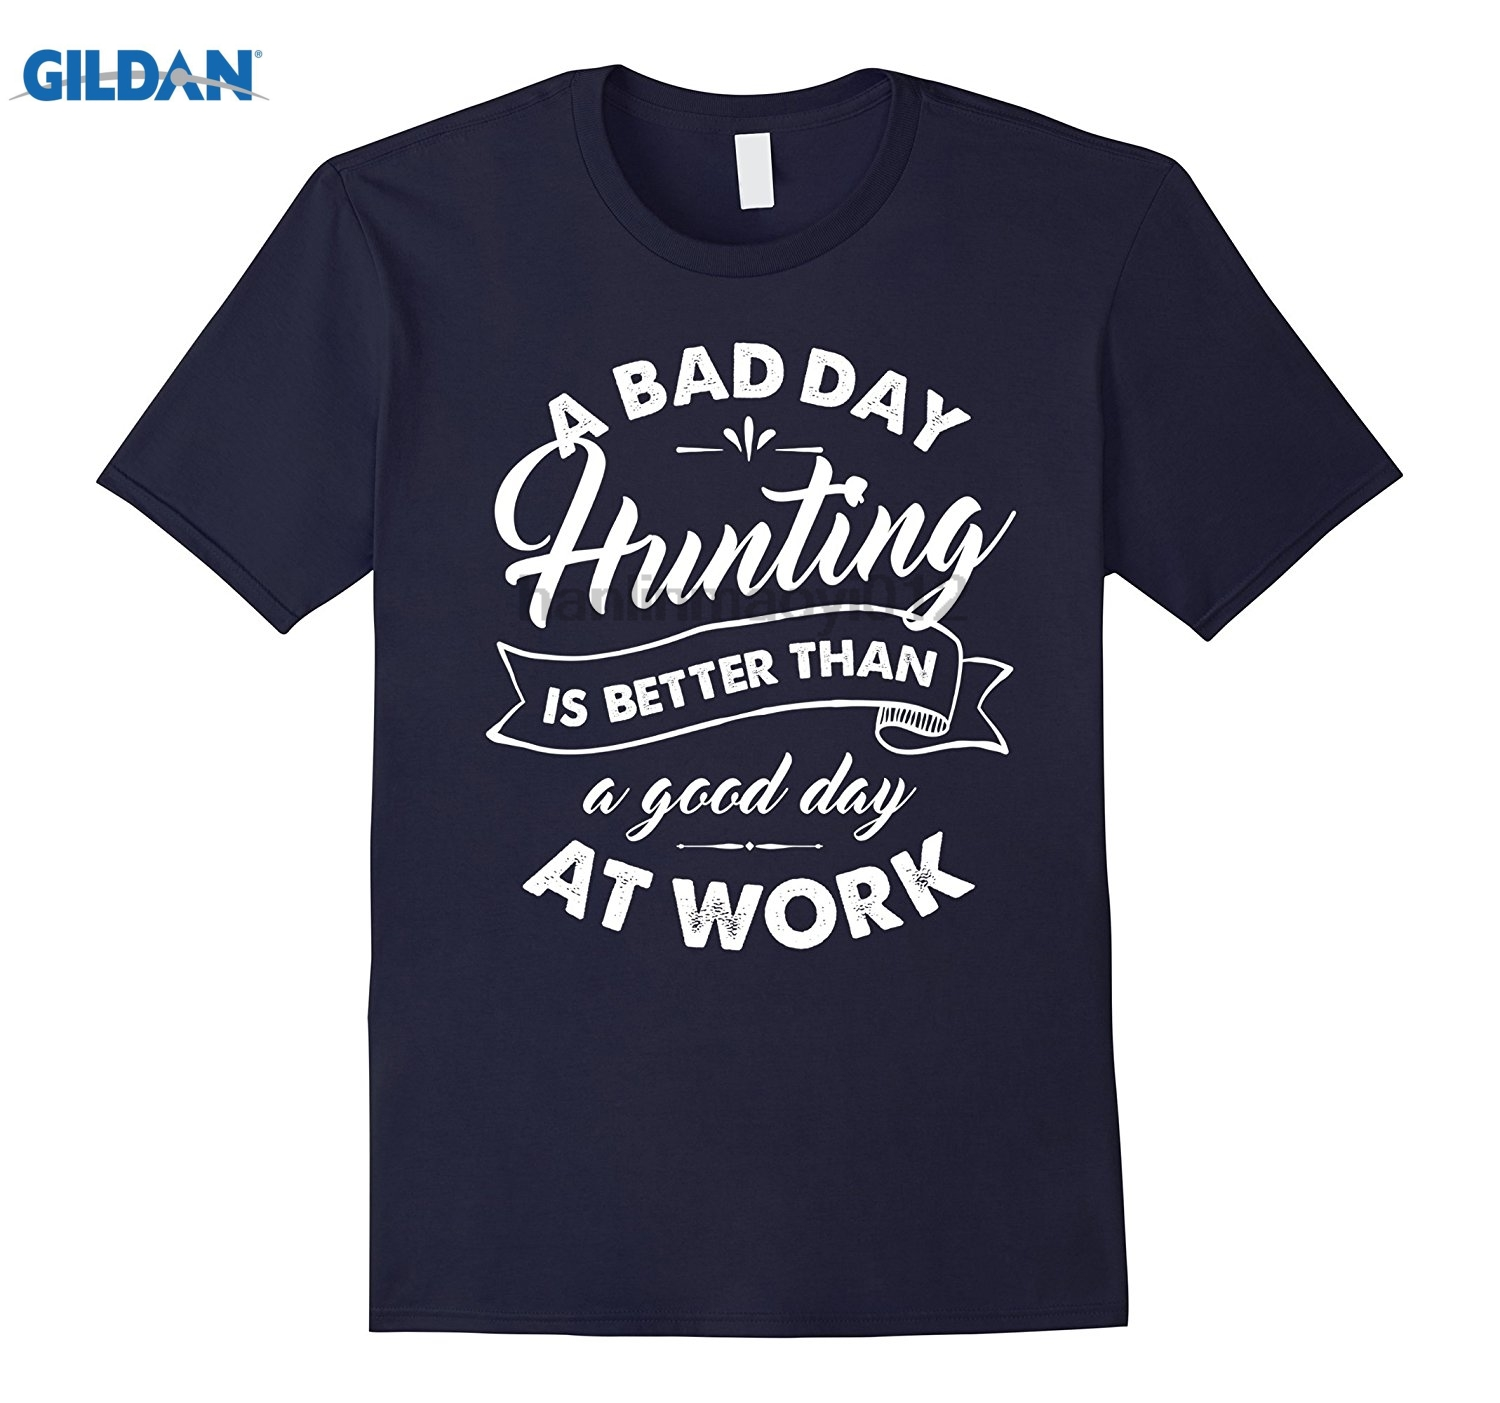 GILDAN Bad Day Better Than Good Day At Work T Shirt Mothers Day Ms. T-shirt